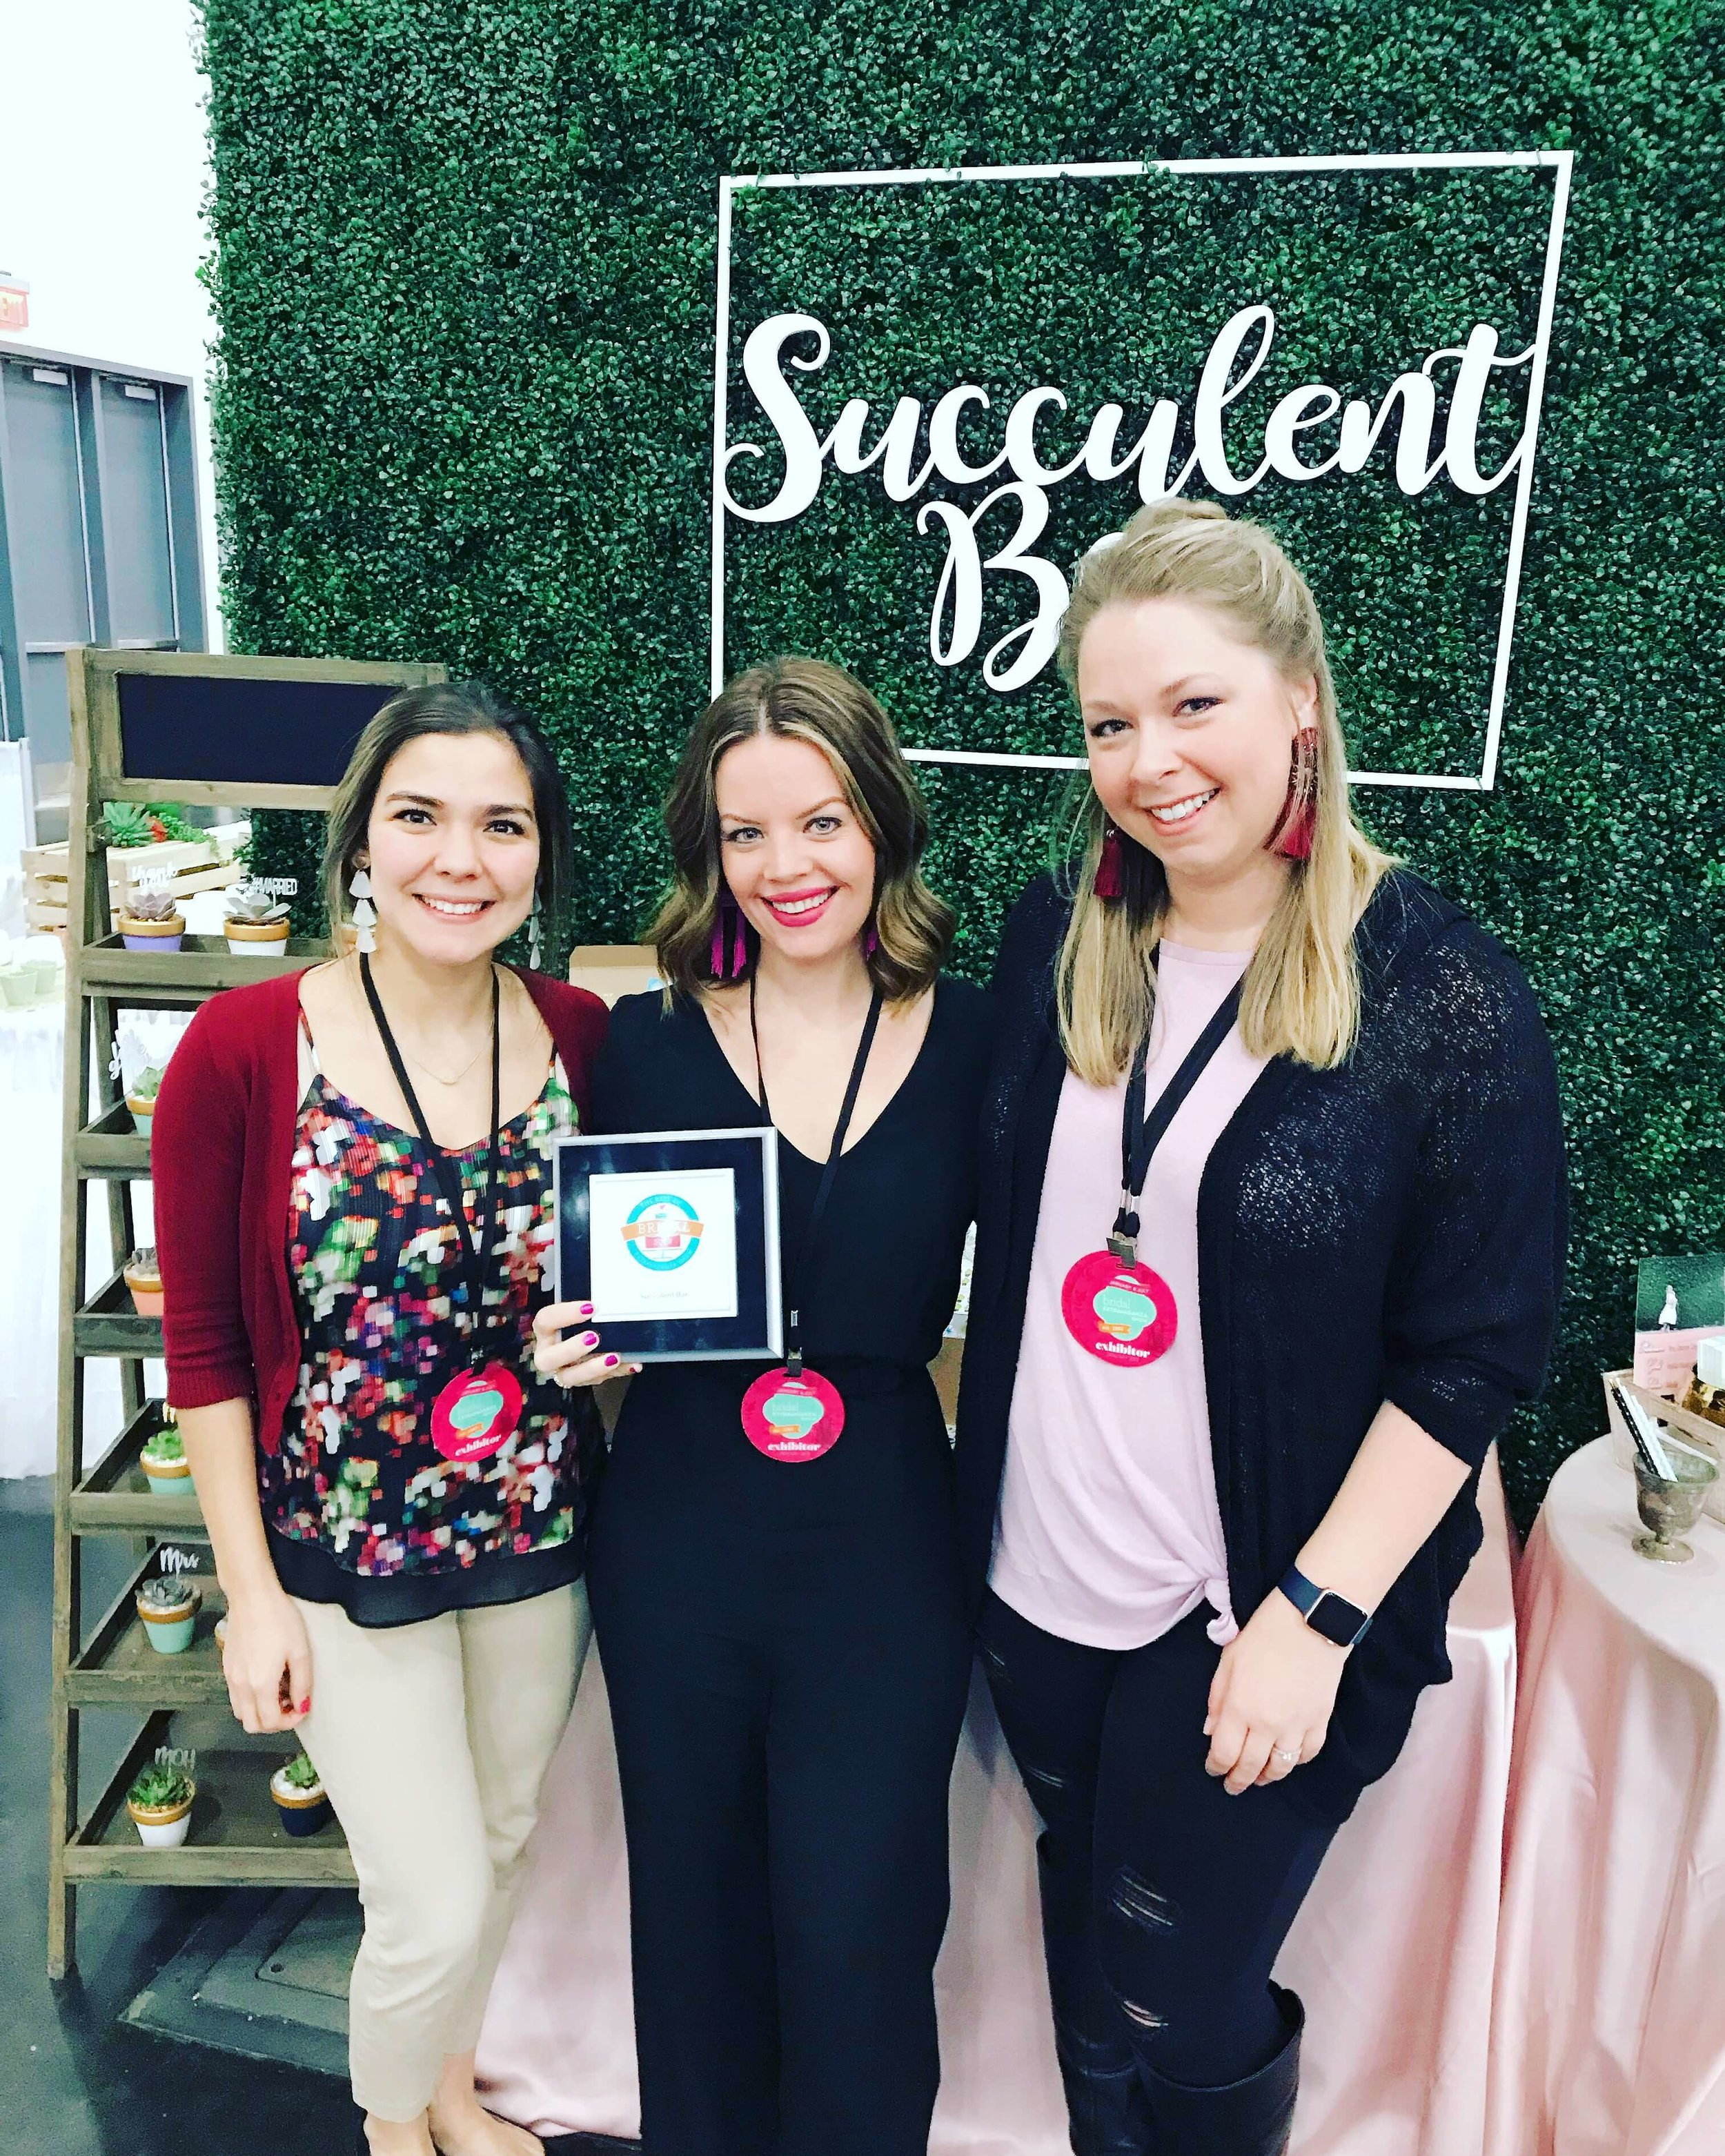 Jessica Siefert (center) accepting the Best of Bridal - Wedding Favors at 2018 Bridal Extravaganza